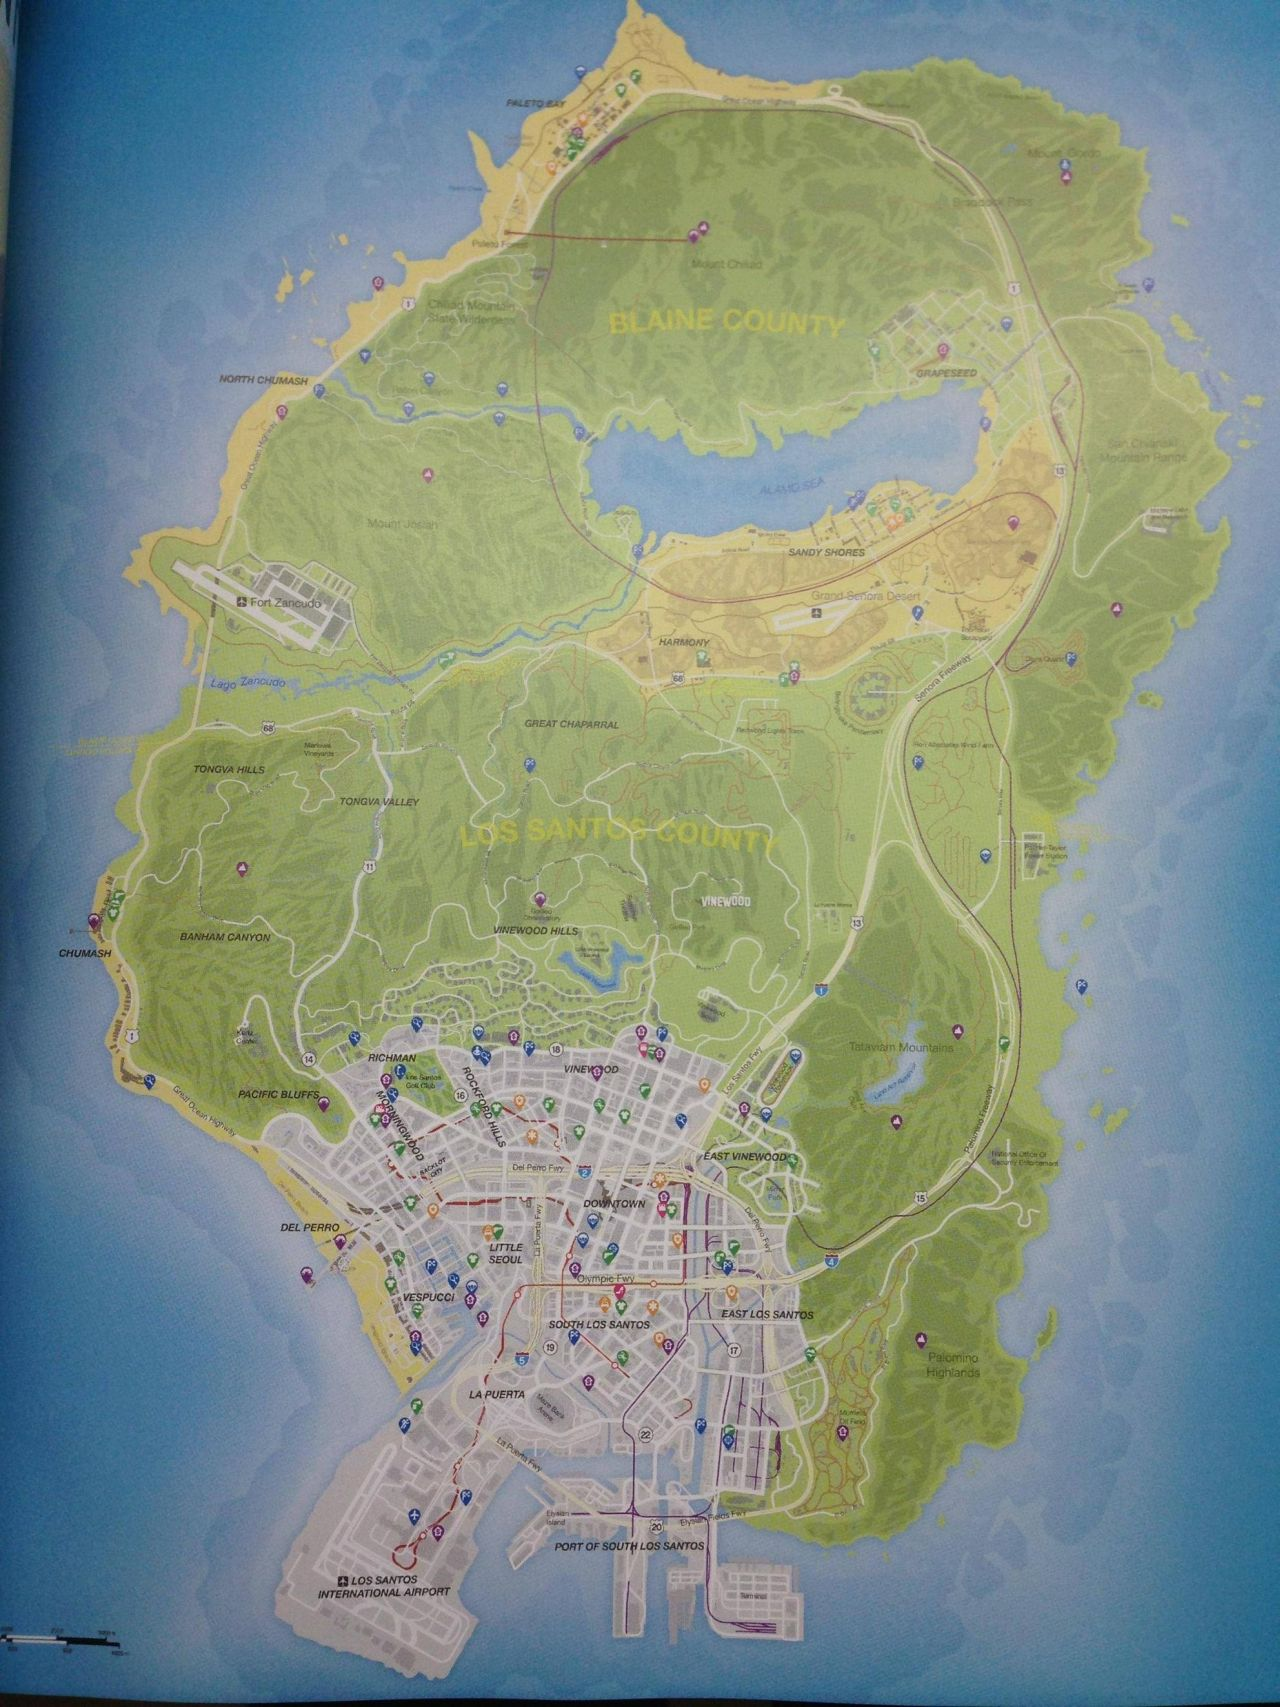 Gta 5 Sandy Shores Map : sandy, shores, Sandy, Shores, Maping, Resources